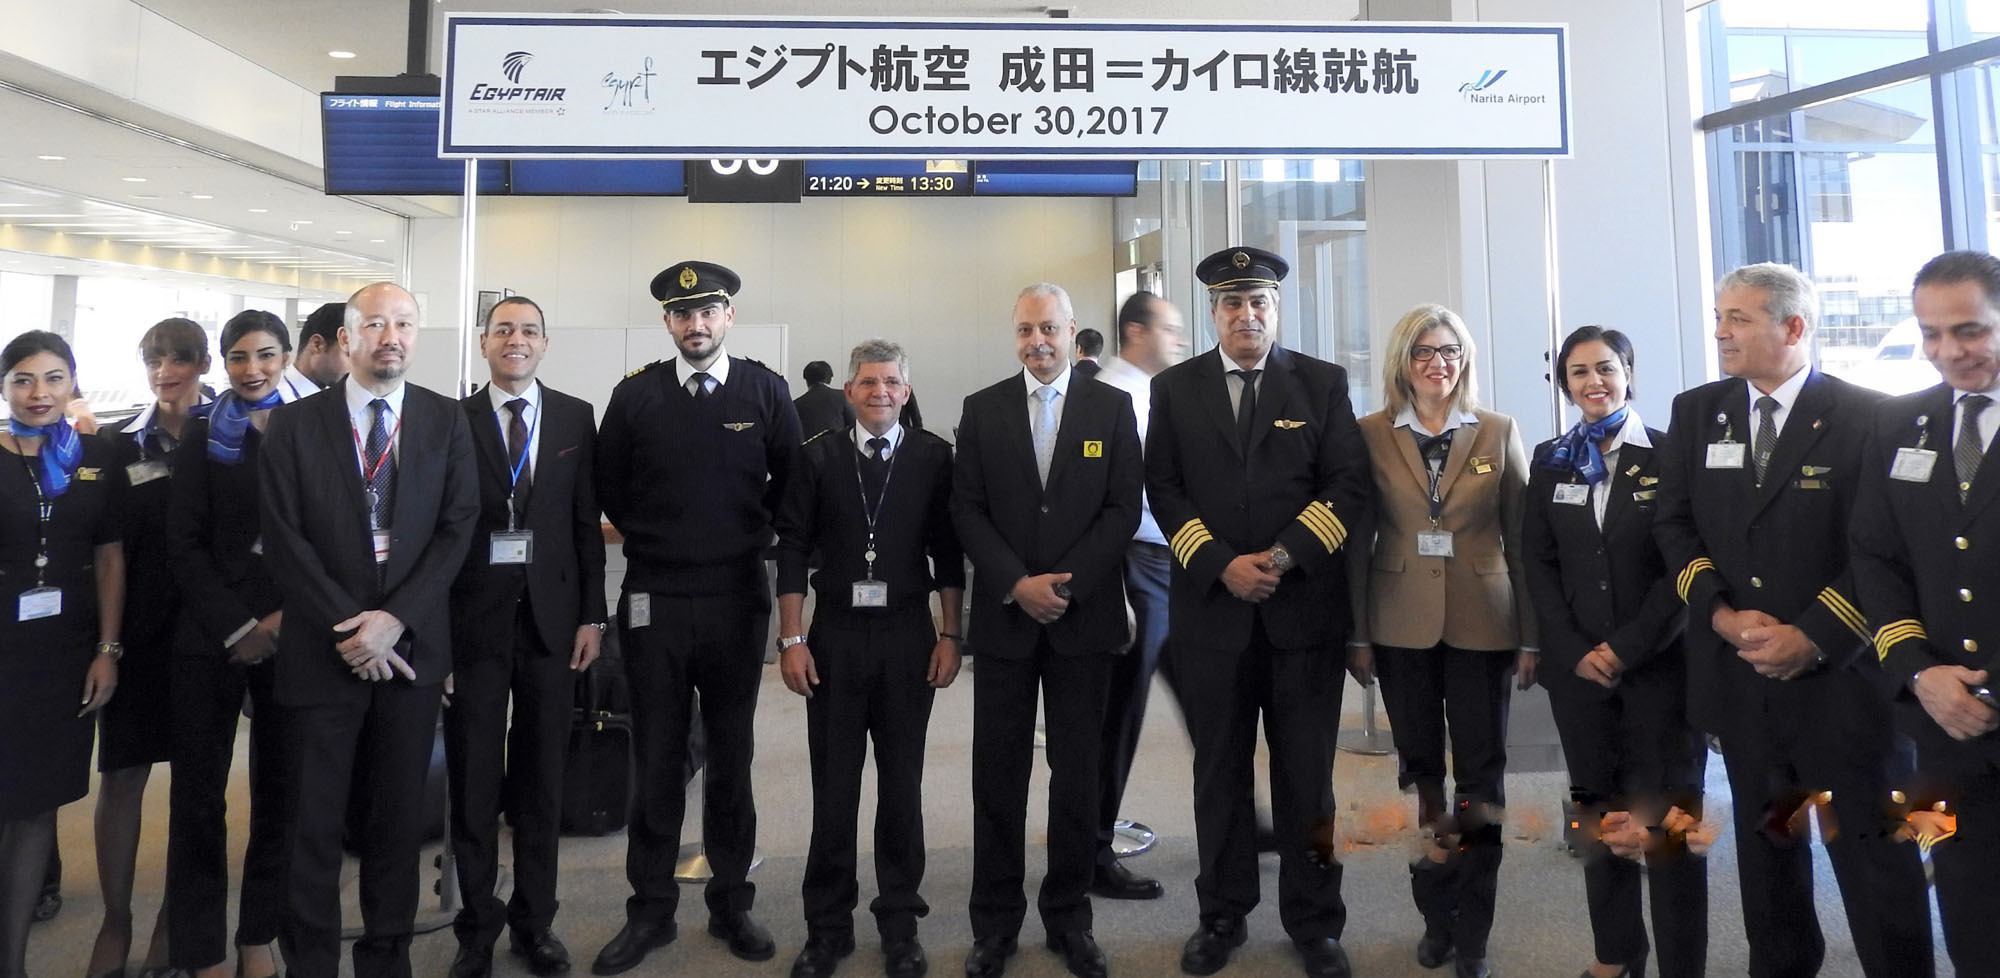 Egyptian Ambassador Ayman Kamel (center) poses with EgyptAir staff at Narita Airport on Oct. 30 during a ceremony to mark the resumption of flights between Cairo and Tokyo. |   COURTESY OF EGYPTIAN EMBASSY